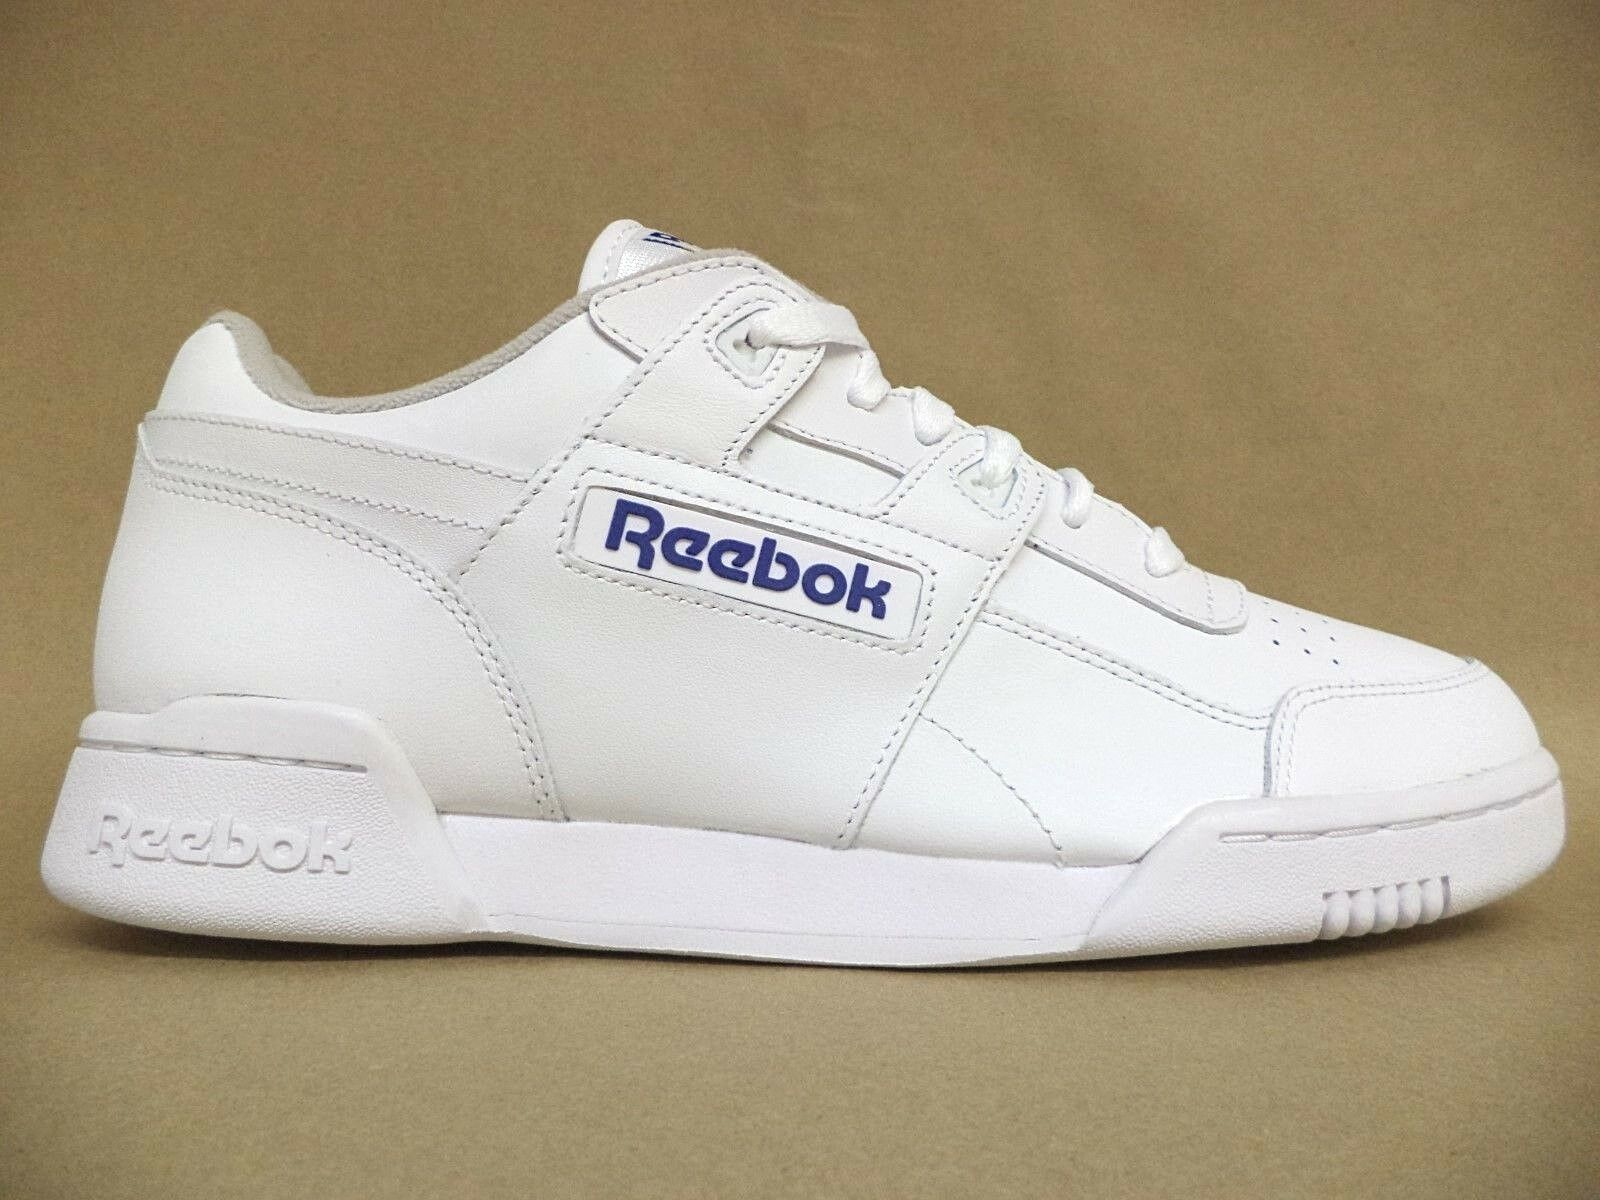 hommes Reebok Workout Plus Turnchaussures - 2759